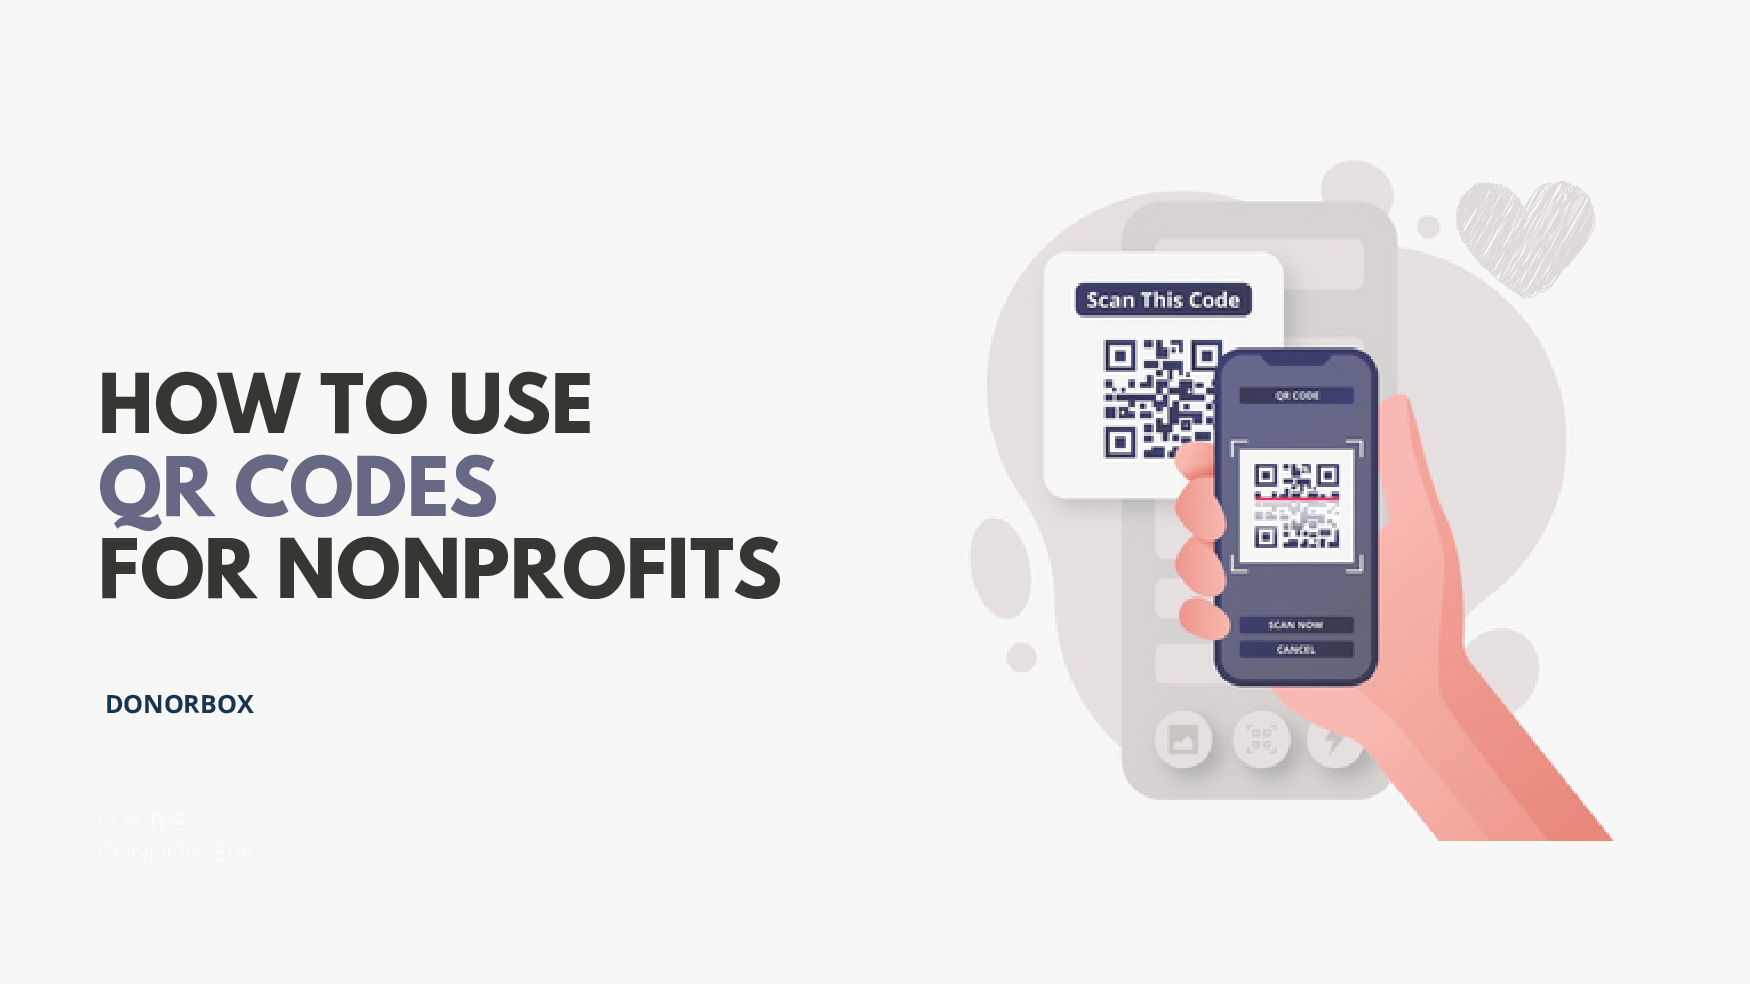 How to Use QR Codes for Nonprofit Organizations